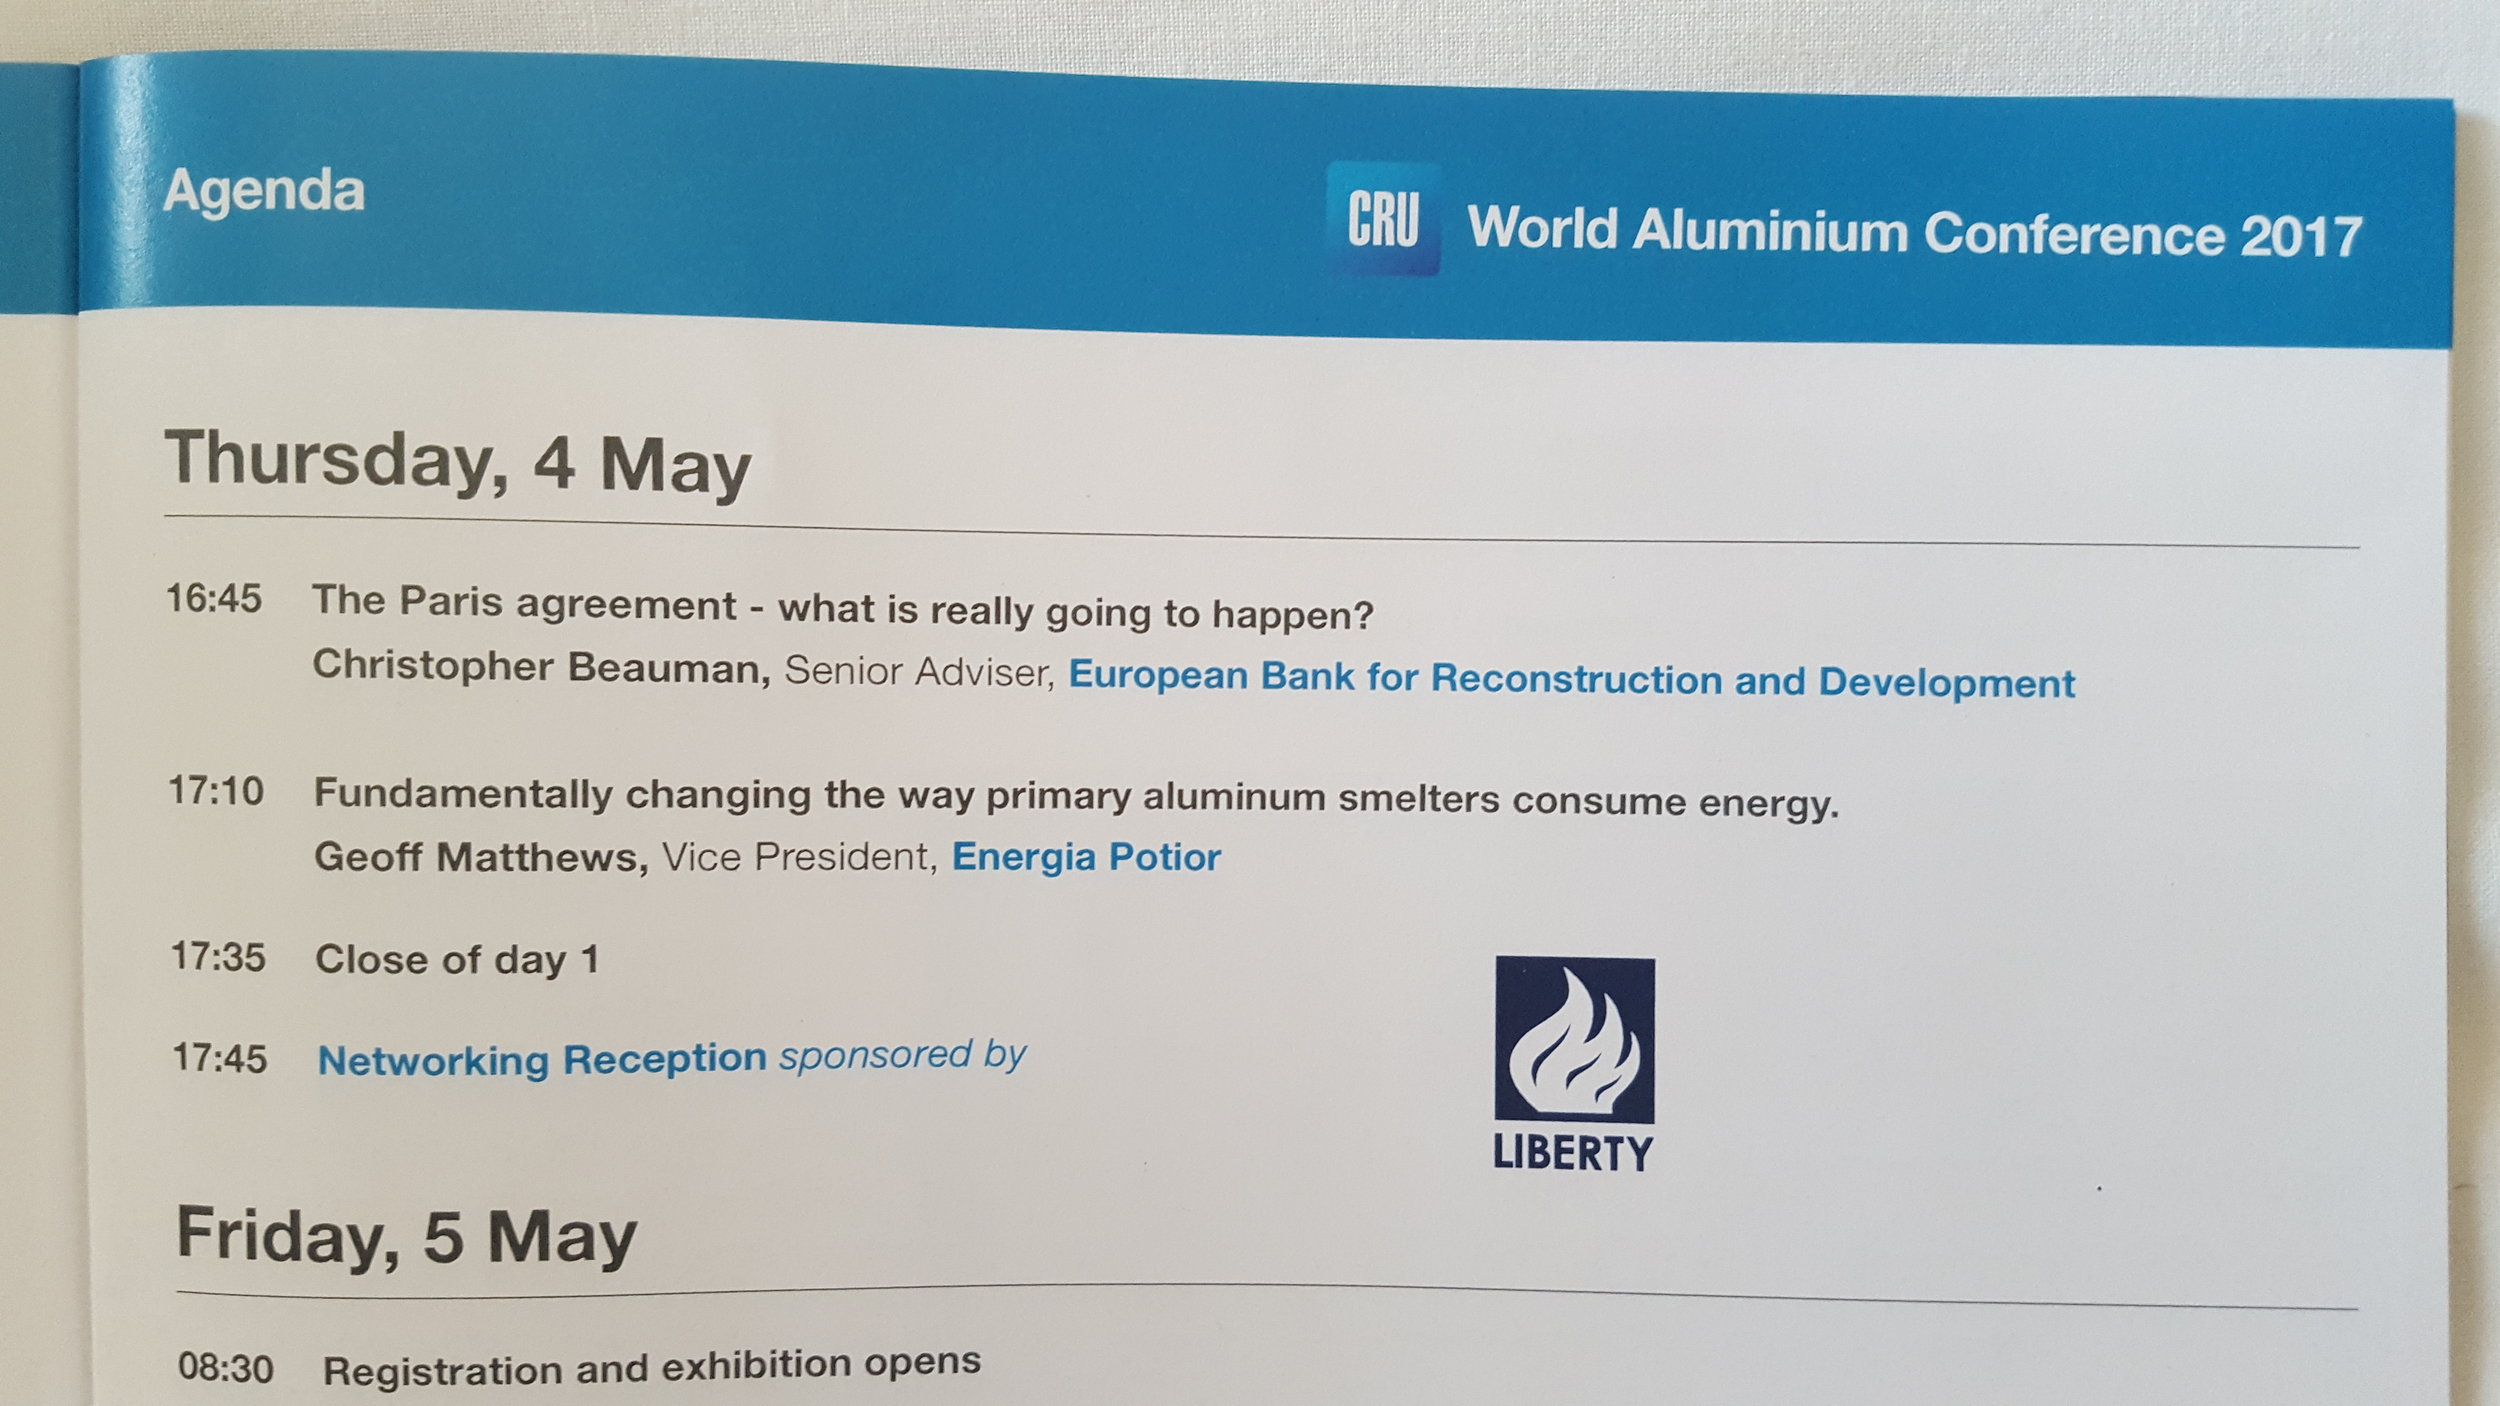 Last week Geoff Matthews spoke at the 2017 CRU World Aluminium Conference.    You can view a copy of his presentation by clicking HERE.